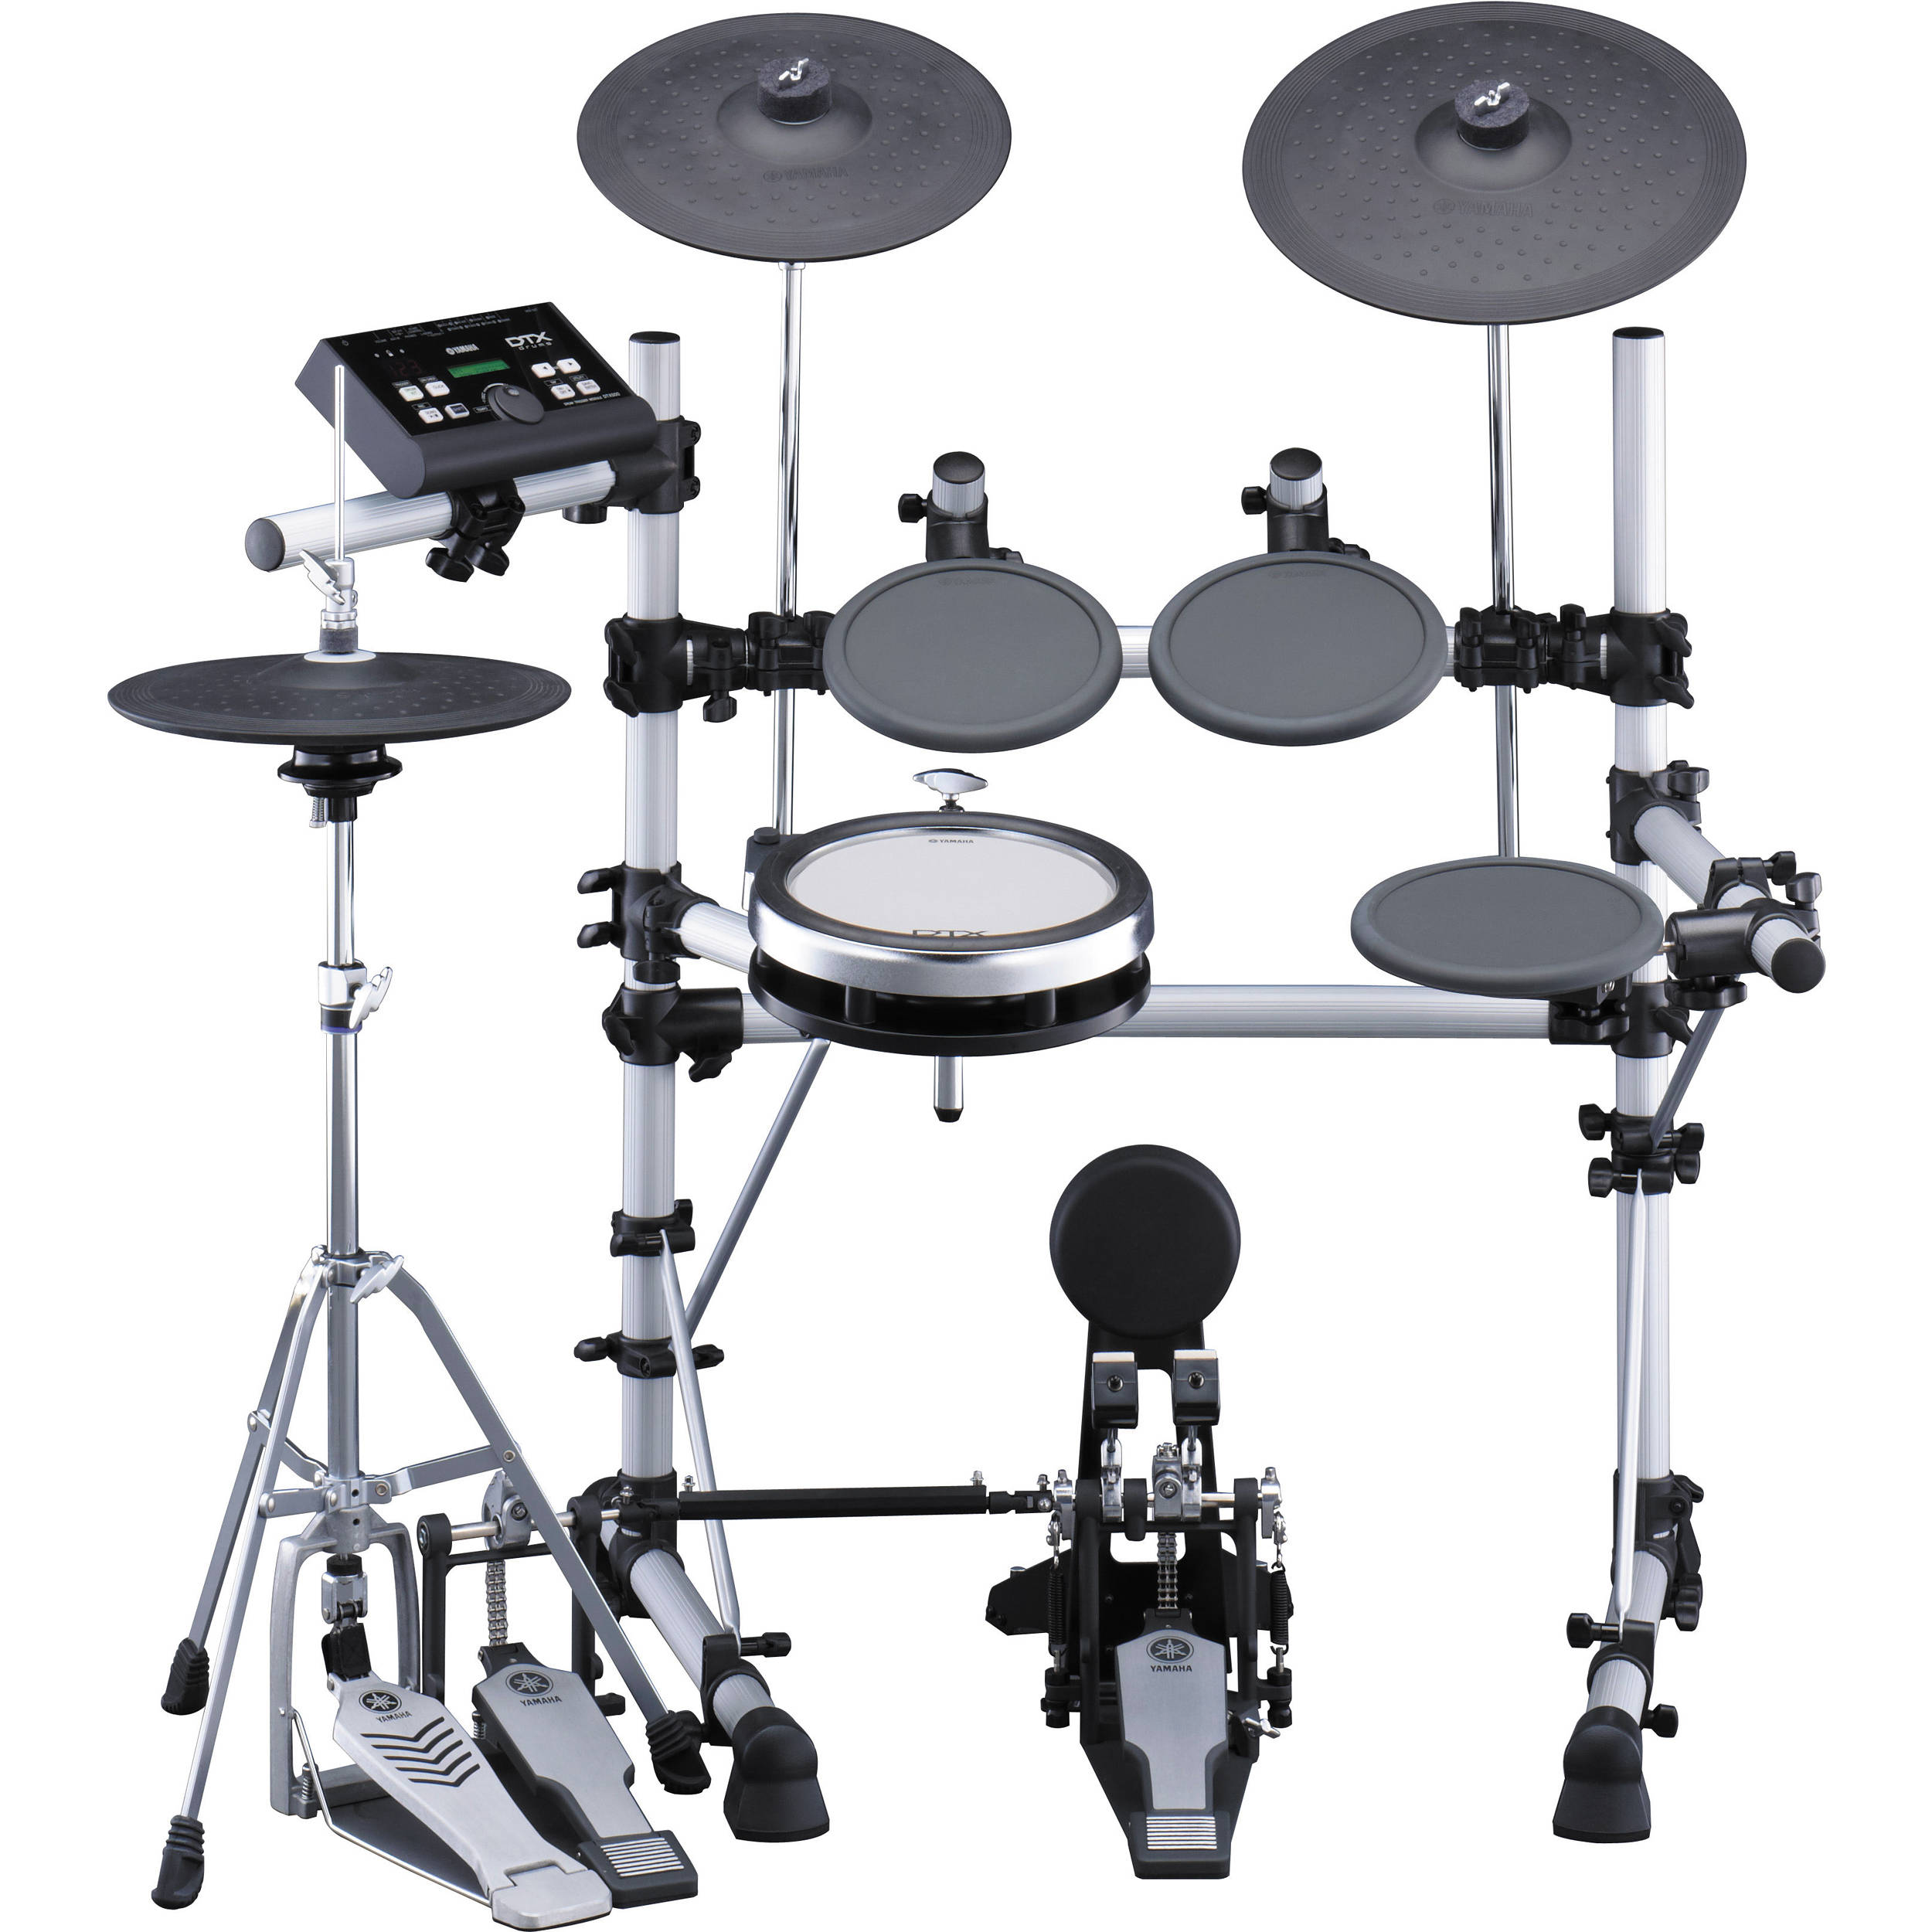 Yamaha dtx550k electronic drum kit dtx550k b h photo video for Yamaha electronic drum kit for sale